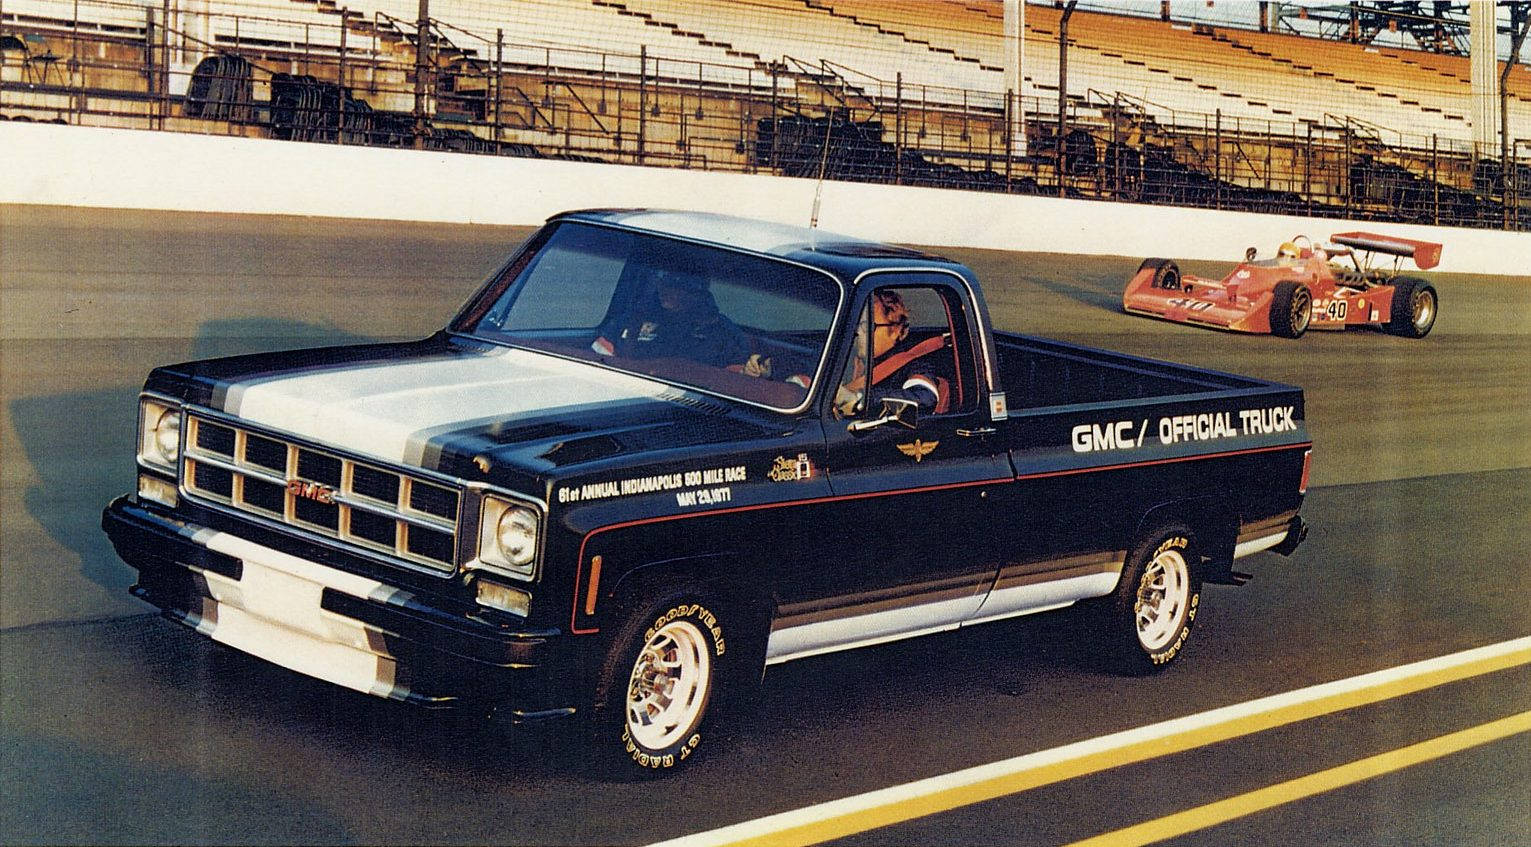 All Of 73 87 Chevy And Gmc Special Edition Pickup Trucks Part I 1983 C10 Truck Bought Some The Official From Other Years As Well Including 1974 1980 1981 1984 Participating Dealerships